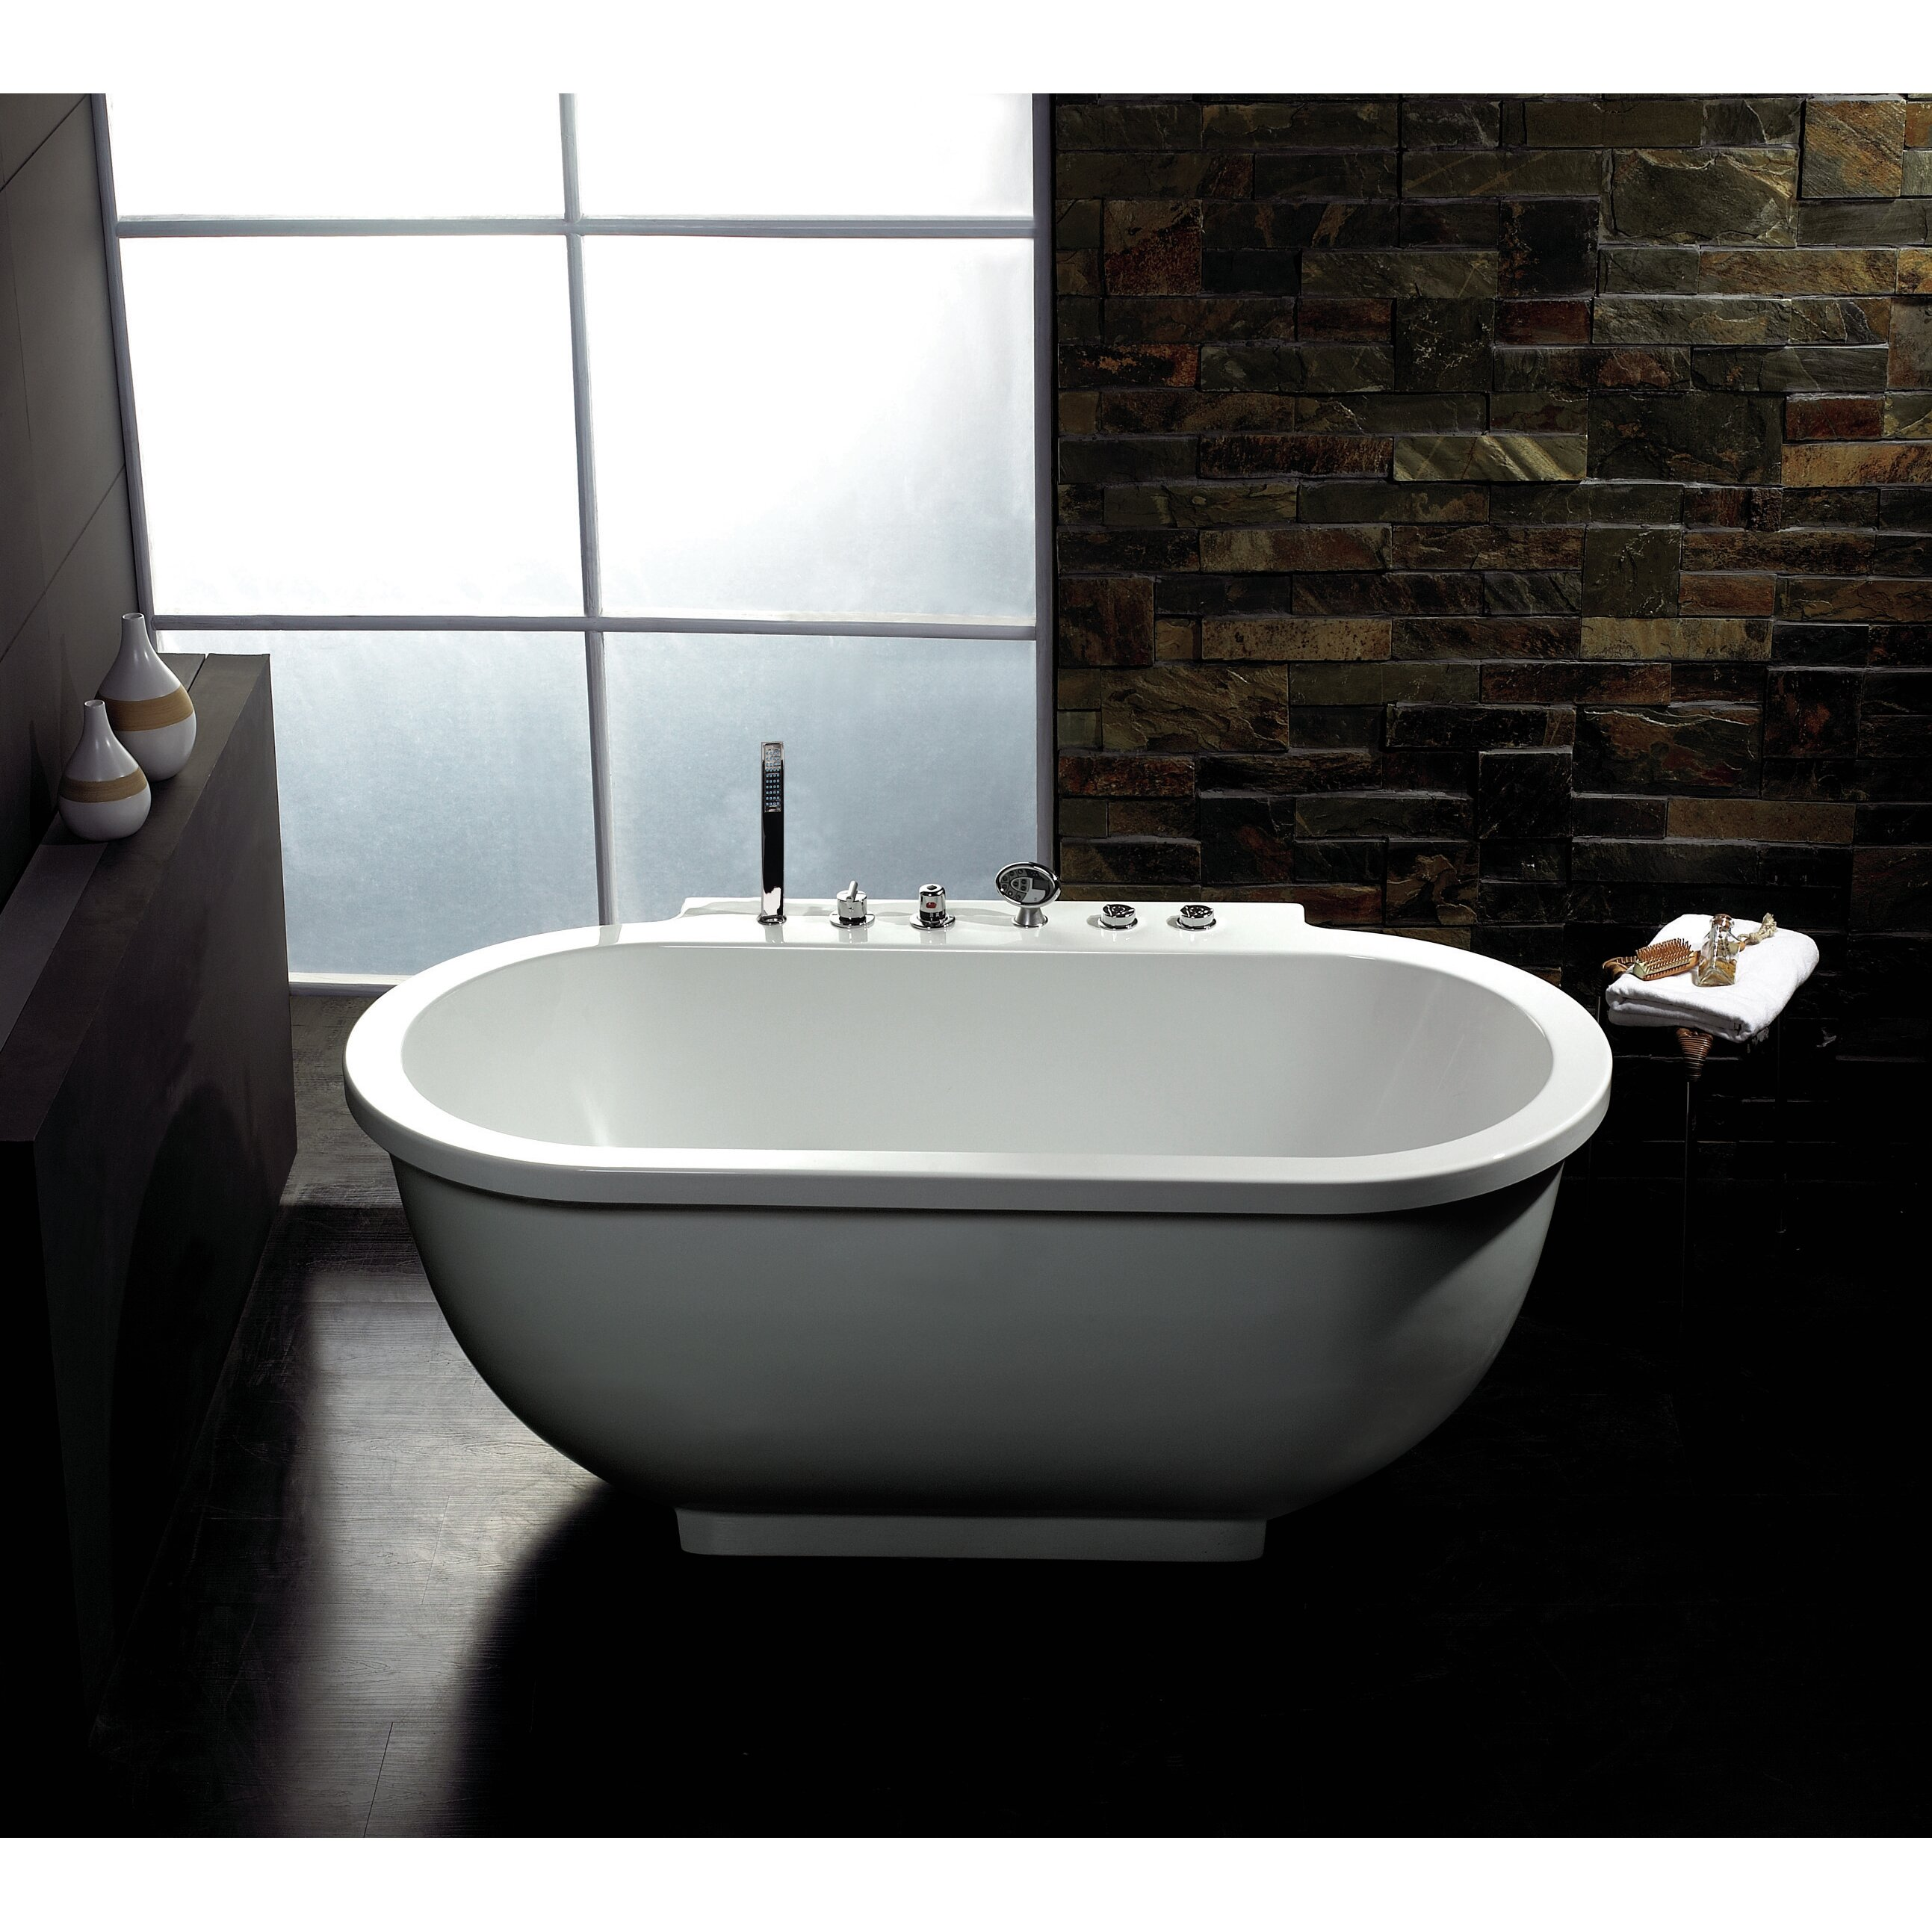 Ariel bath 71 x 37 whirlpool bathtub reviews wayfair for Bathroom bath